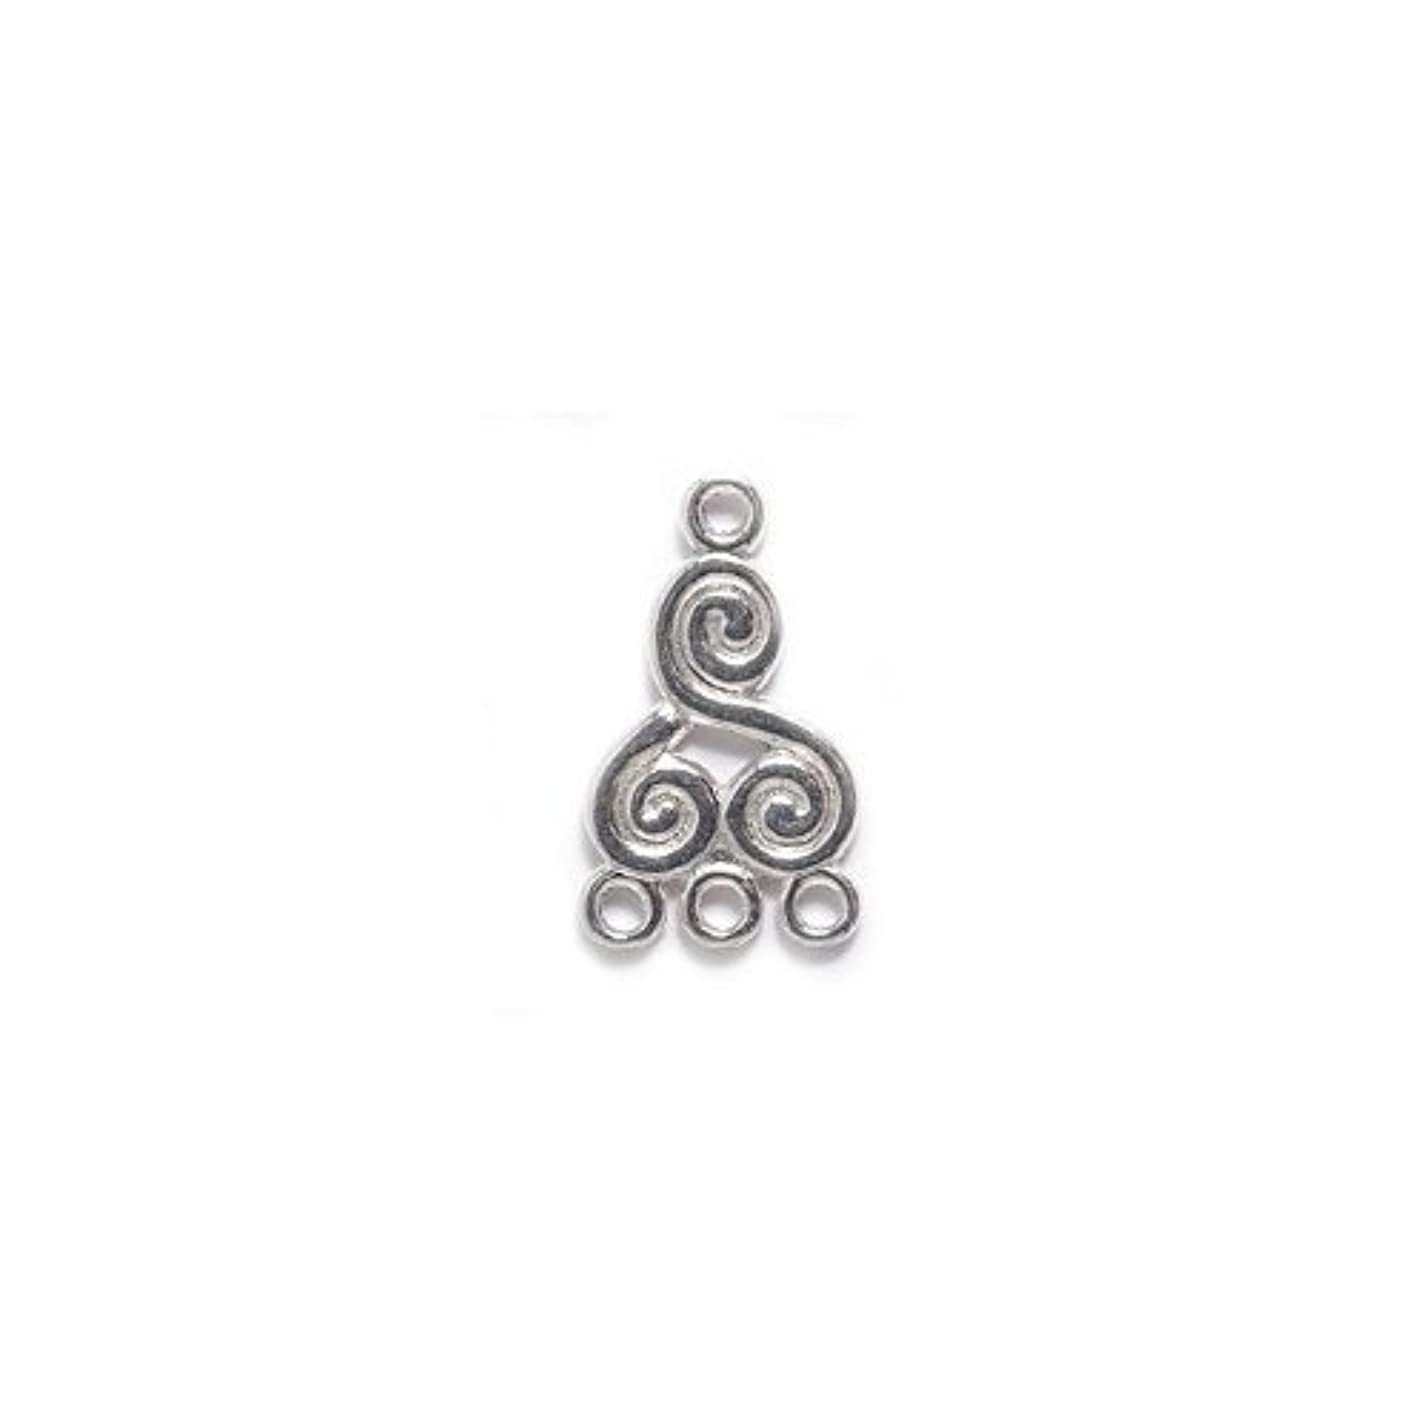 Shipwreck Beads Electroplated Brass Earring Swirl Drop 3 Loop, 12 by 21mm, Metallic, Silver, 2-Pairs aum931218970356